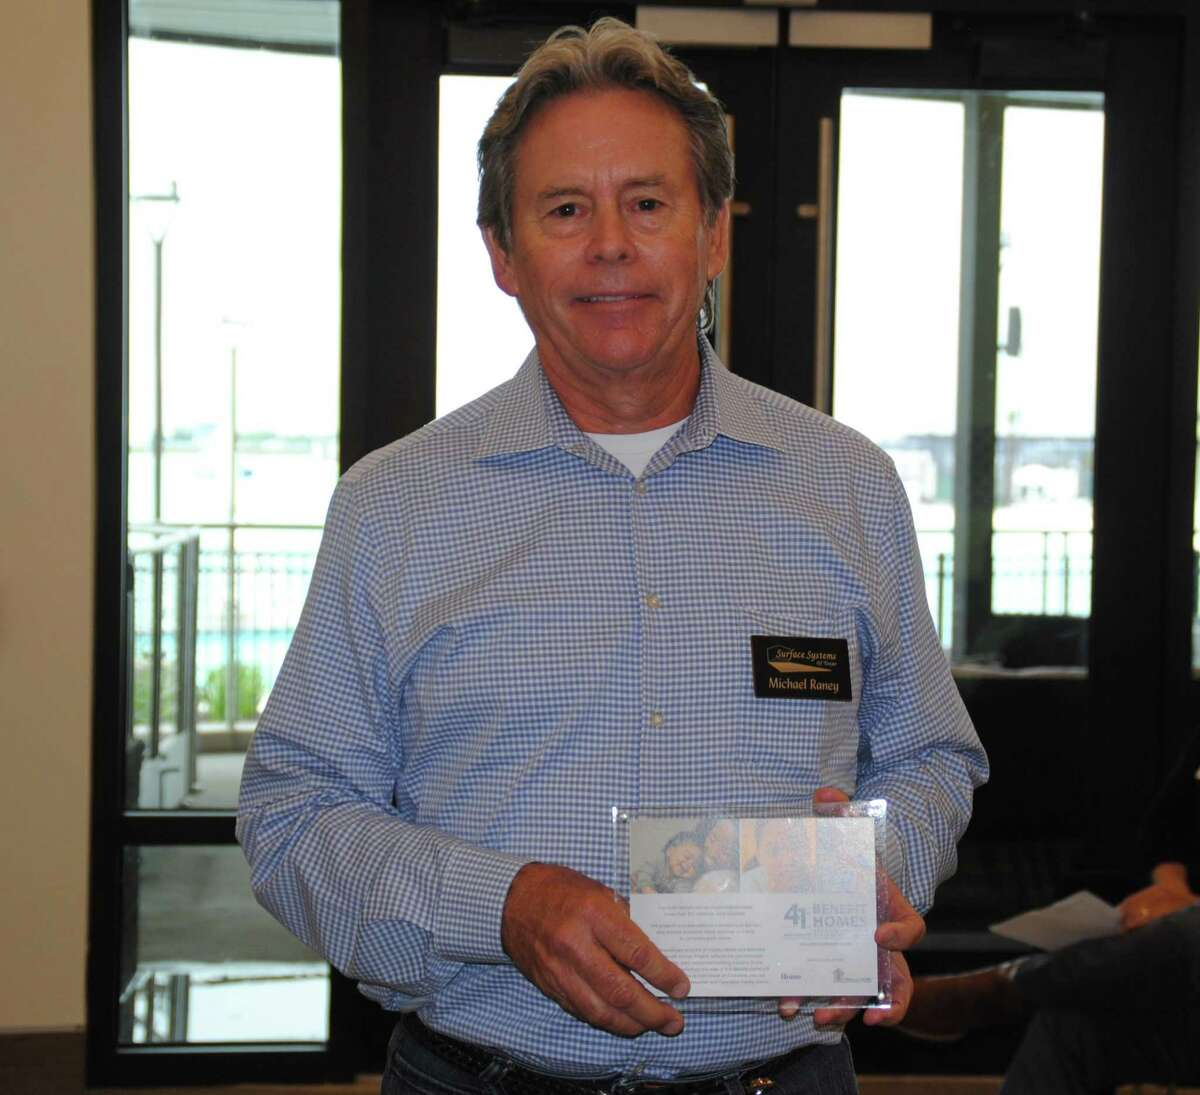 Michael Raney, president of Surface Systems of Texas received an appreciation plaque from Chesmar Homes and the GHBA.